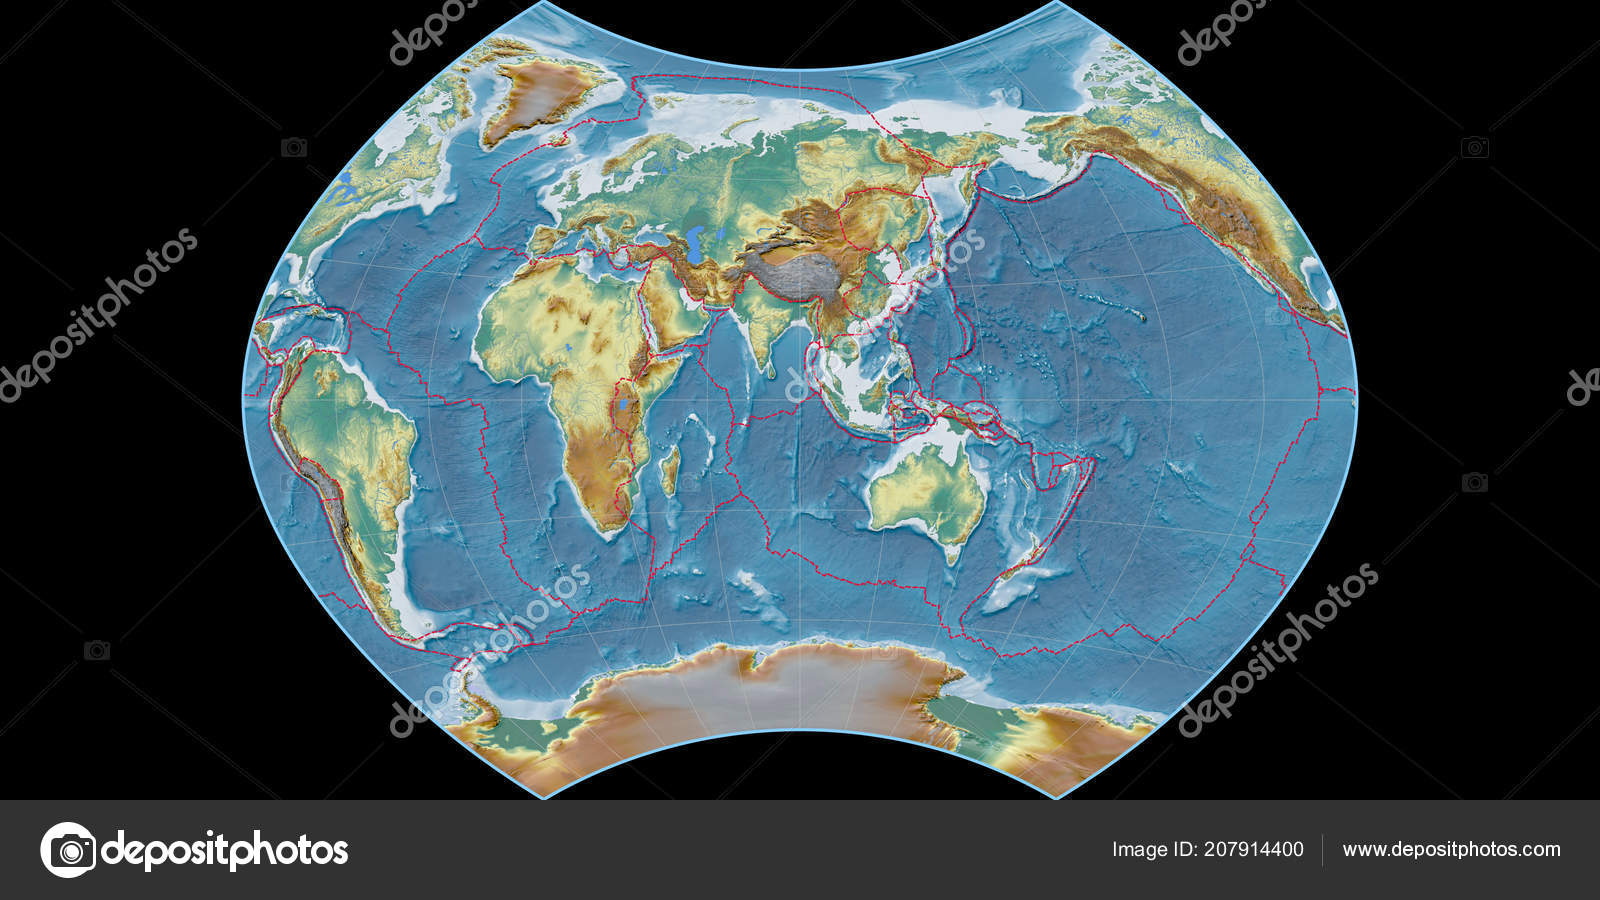 World map ginzburg projection centered east longitude topographic world map ginzburg projection centered east longitude topographic relief map stock photo gumiabroncs Image collections